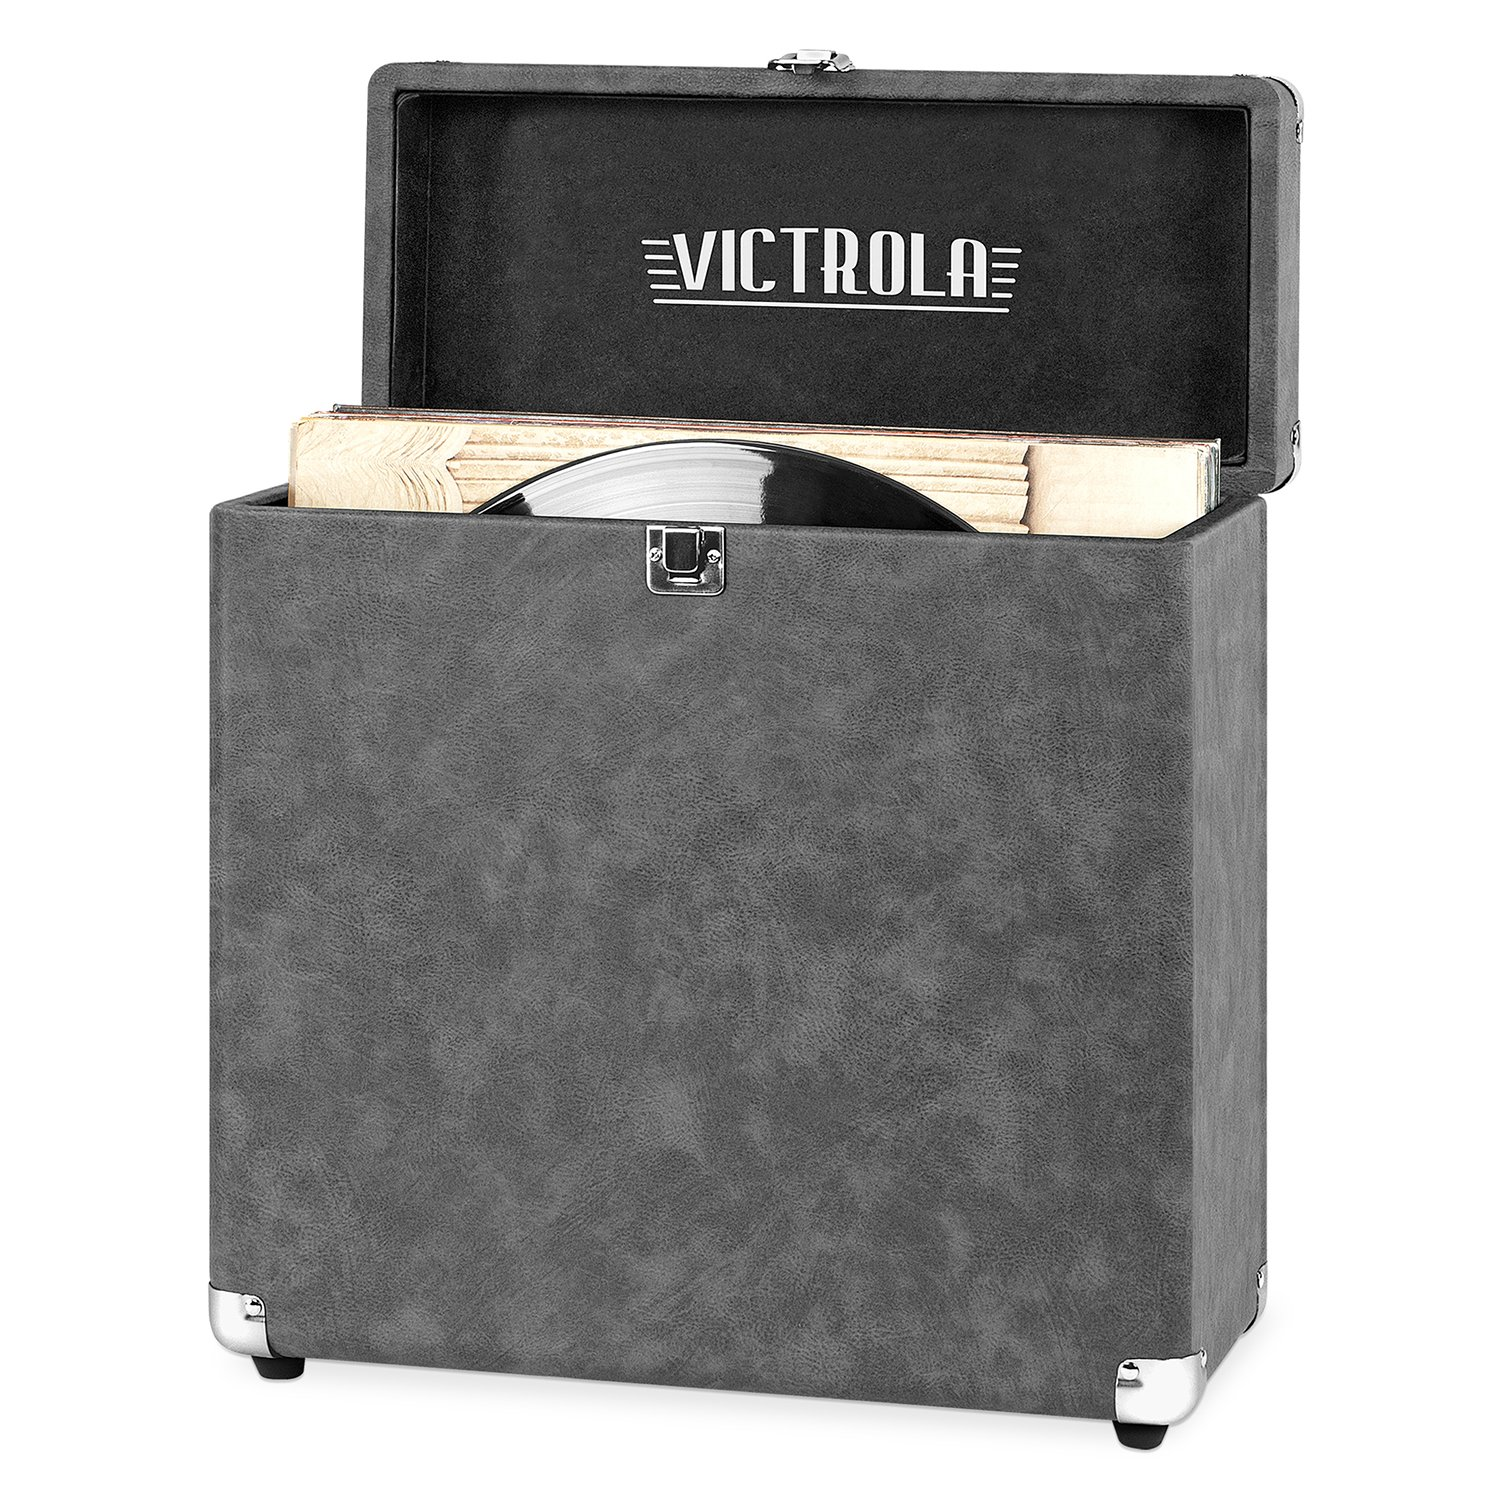 Victrola Vintage Vinyl Record Storage Carrying Case for 30+ Records, Gray by Victrola